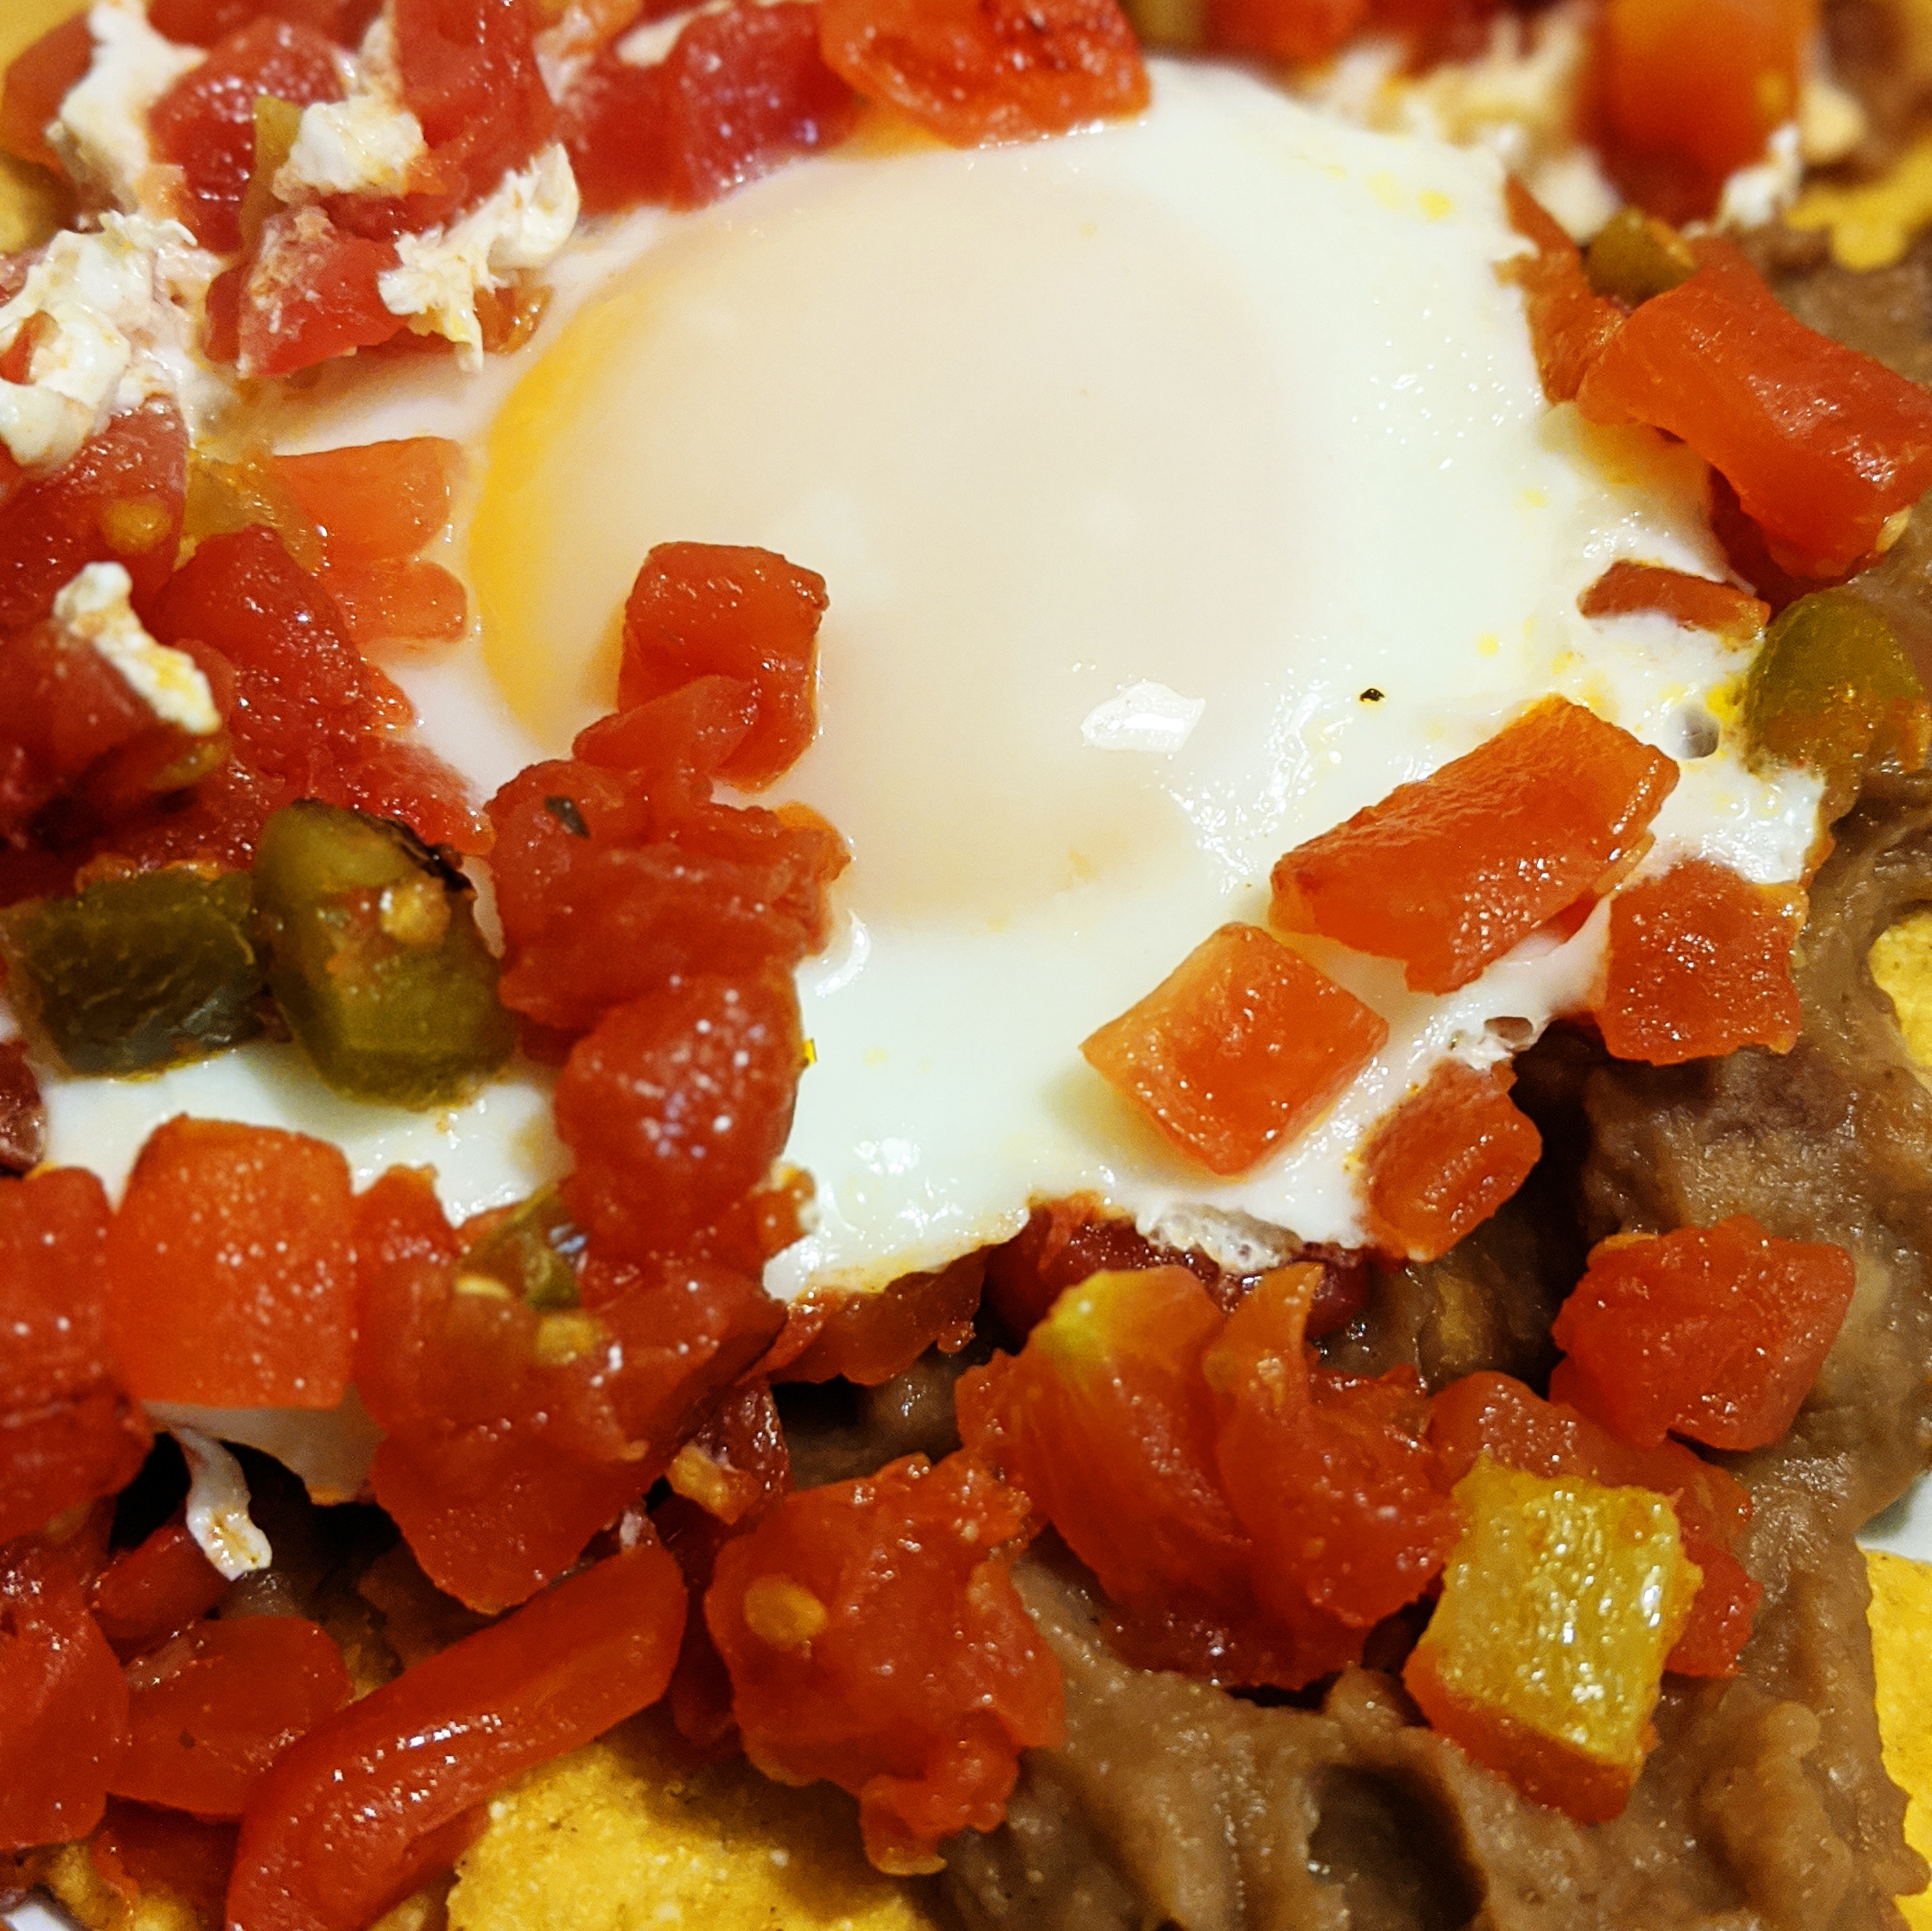 fried egg with tomatoes and chilis on top of refried beans and tostados